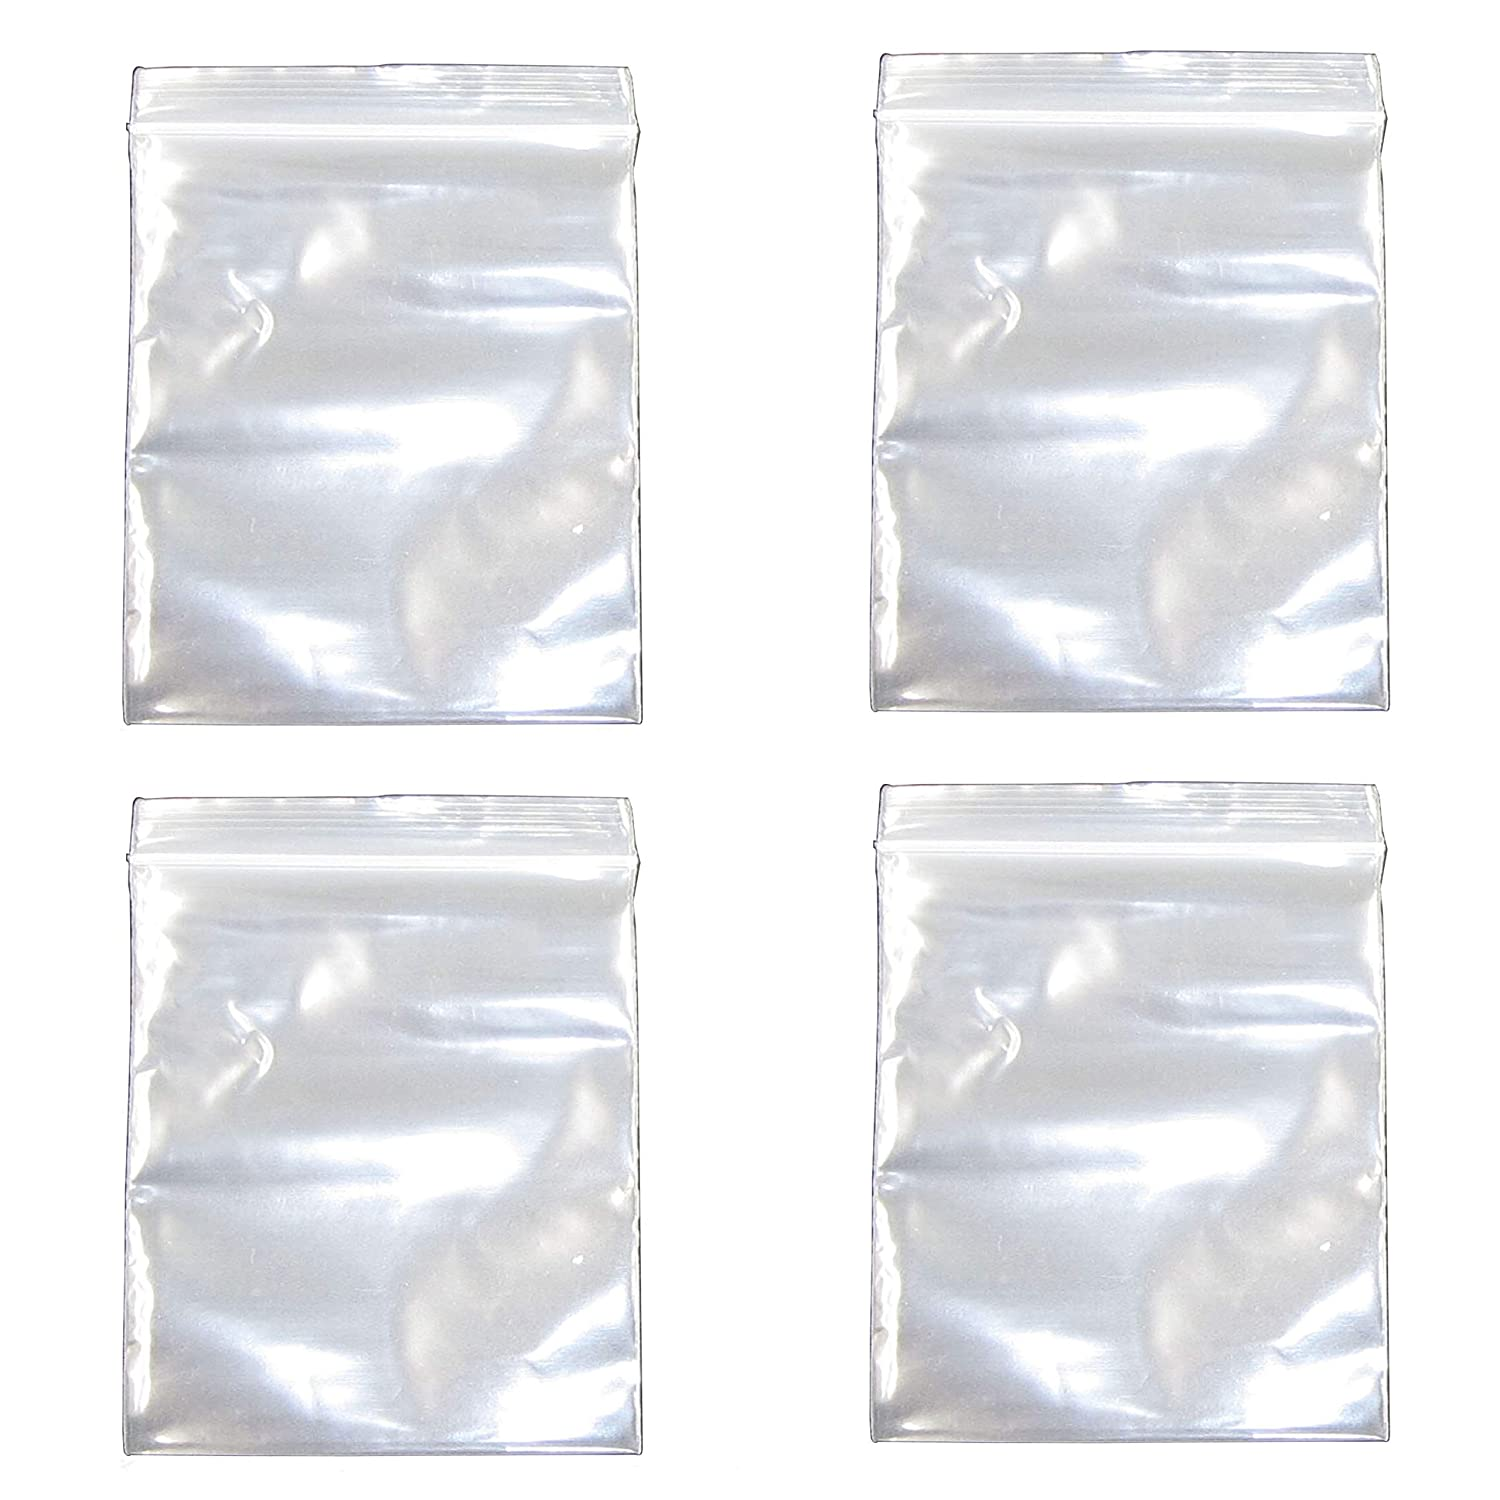 2.3x3.5 Inch, 400 Pack, Small Clear Resealable Zipper Poly Bags 2 Mil Thick, Food Grade Safe Reclosable Zipper Storage Plastic Bags for Jewelry,Candy,Beads etc JBingGG